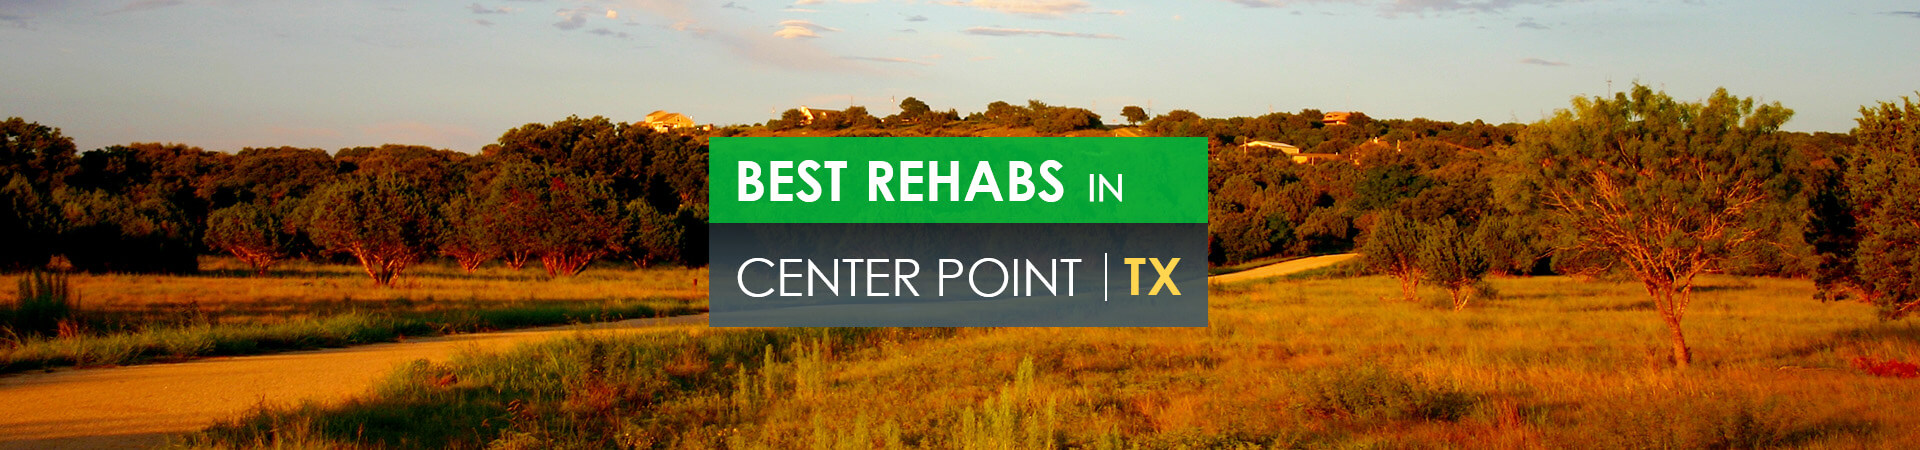 Best rehabs in Center Point, TX